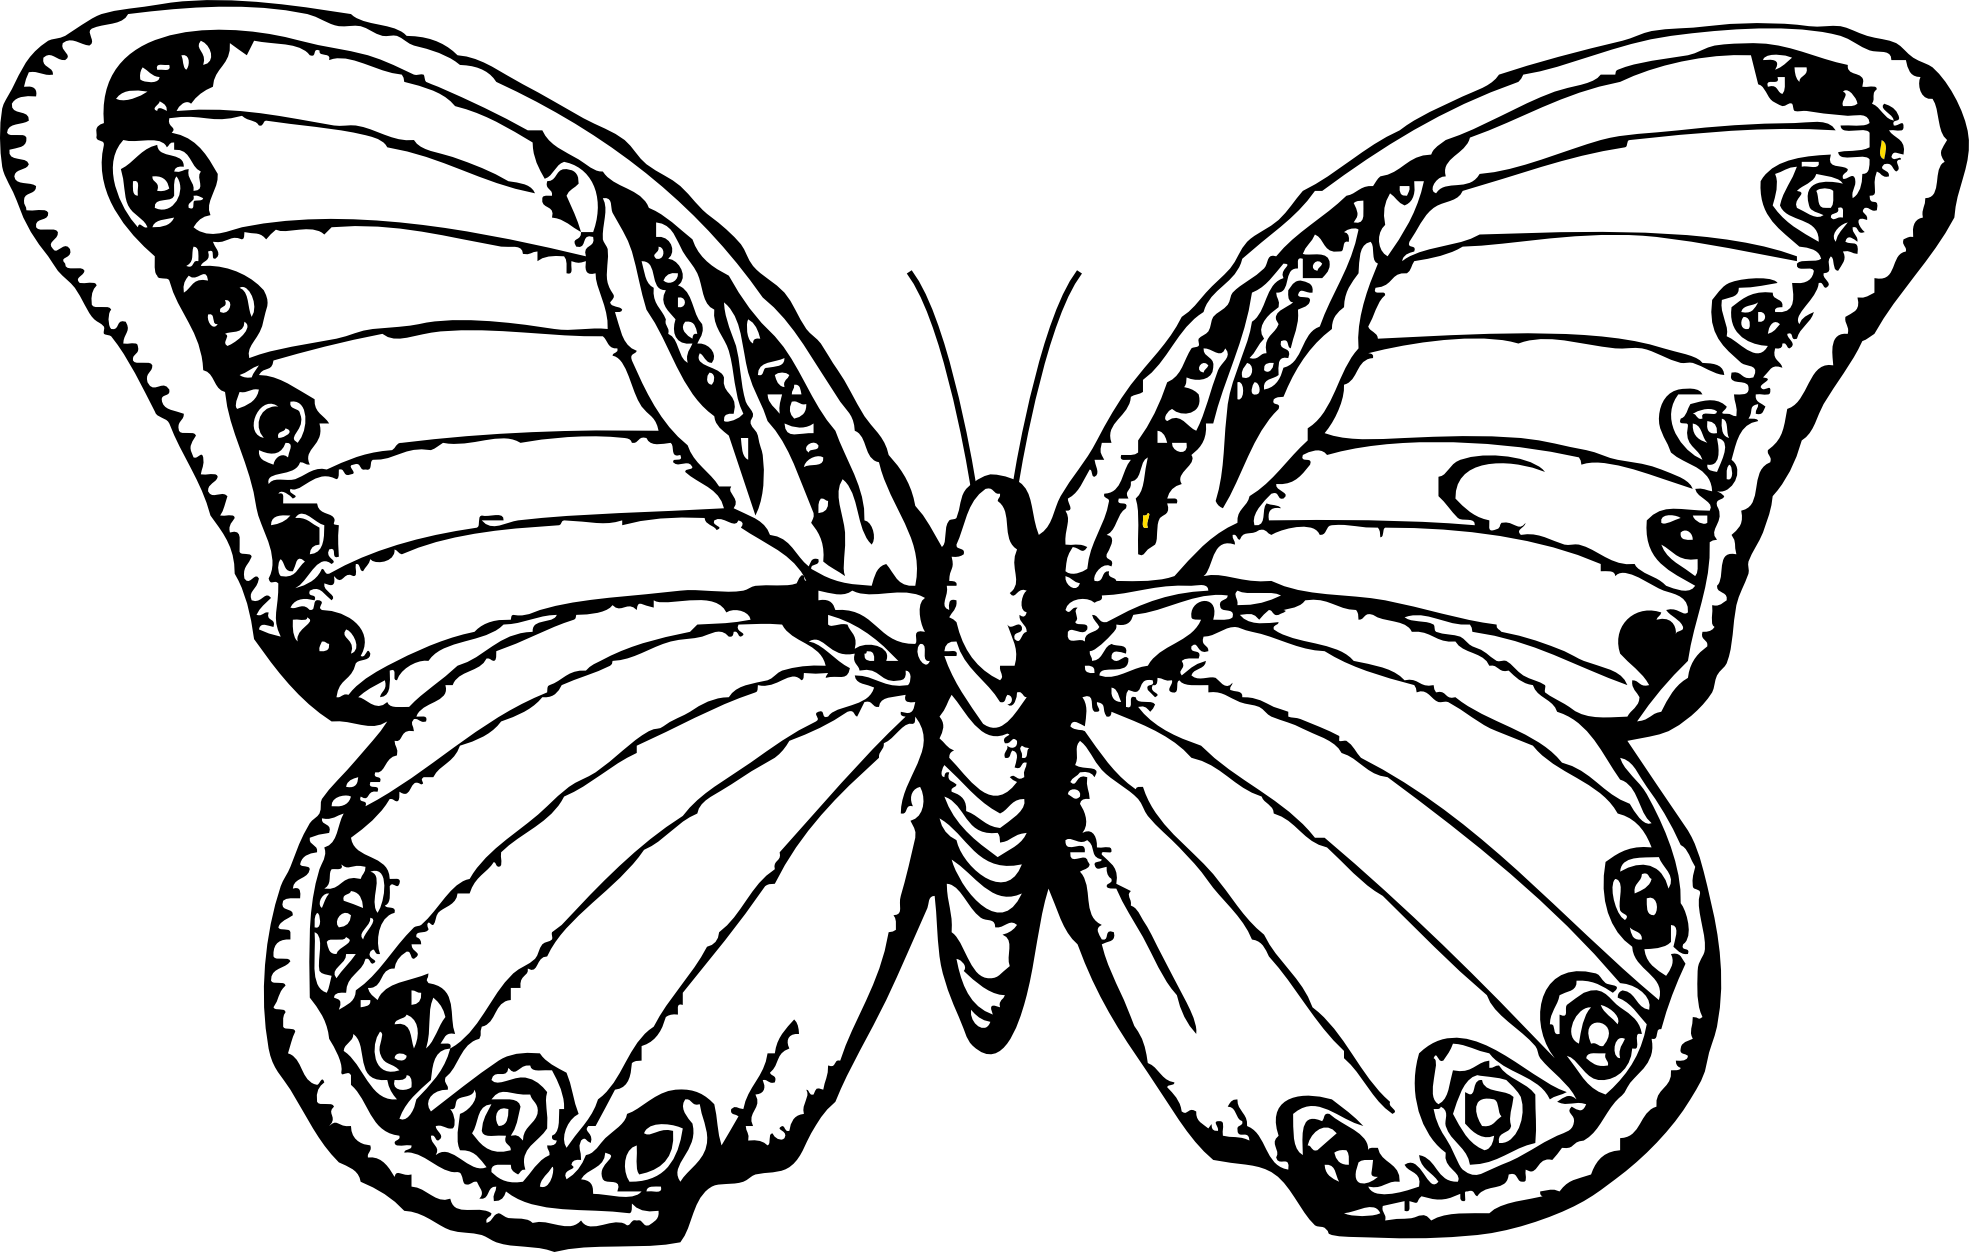 Clipartistfo Butterfly 25 Black White Line Art Svg